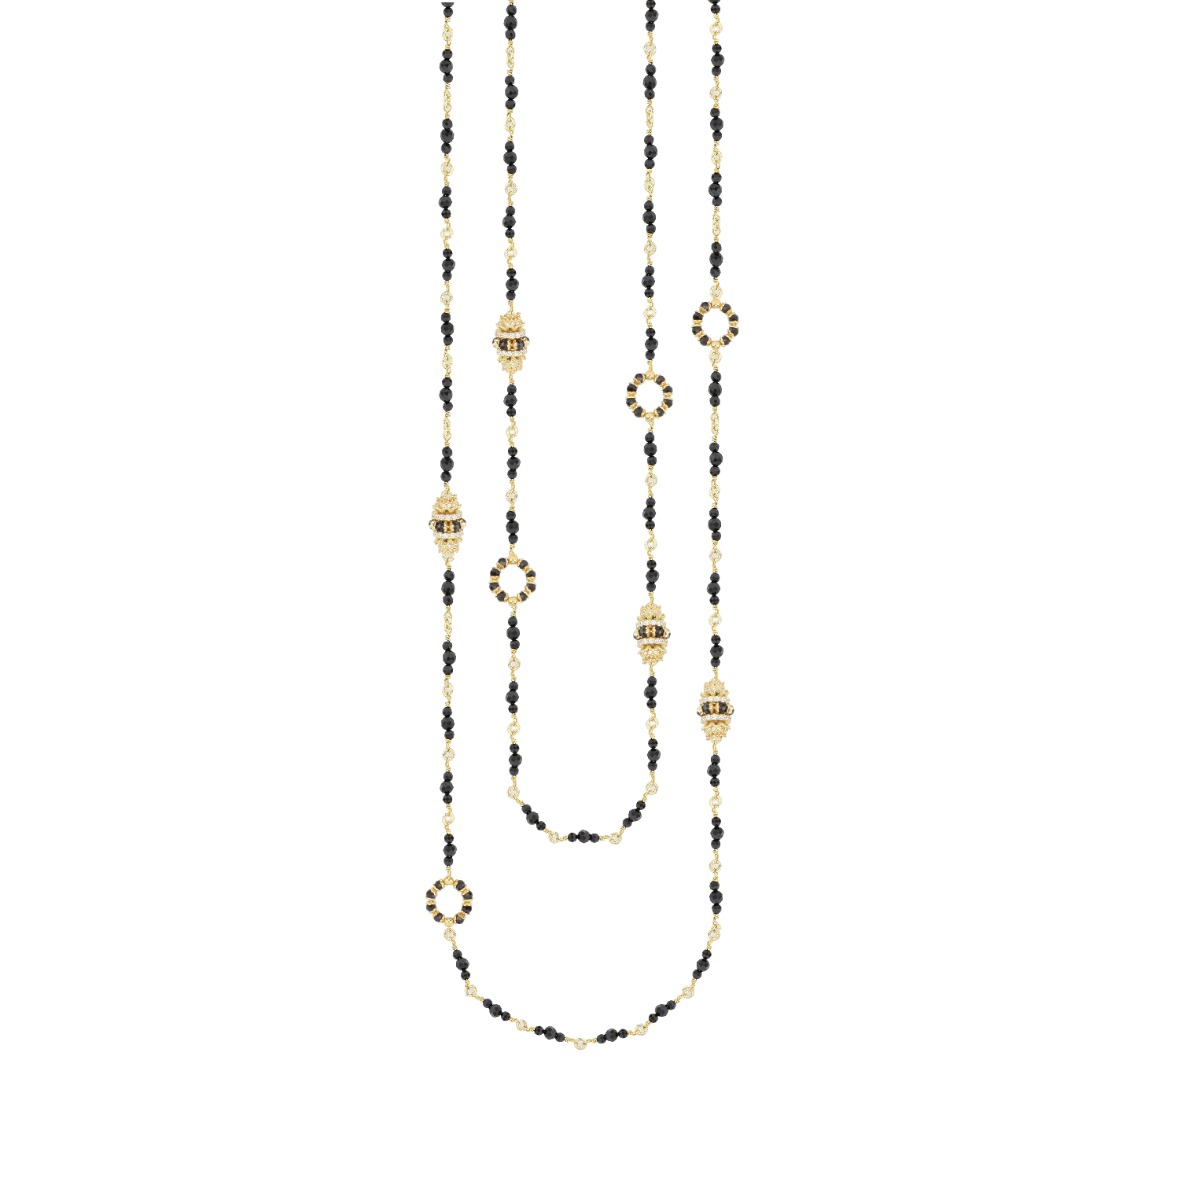 Double Line Spinels Chanel Necklace